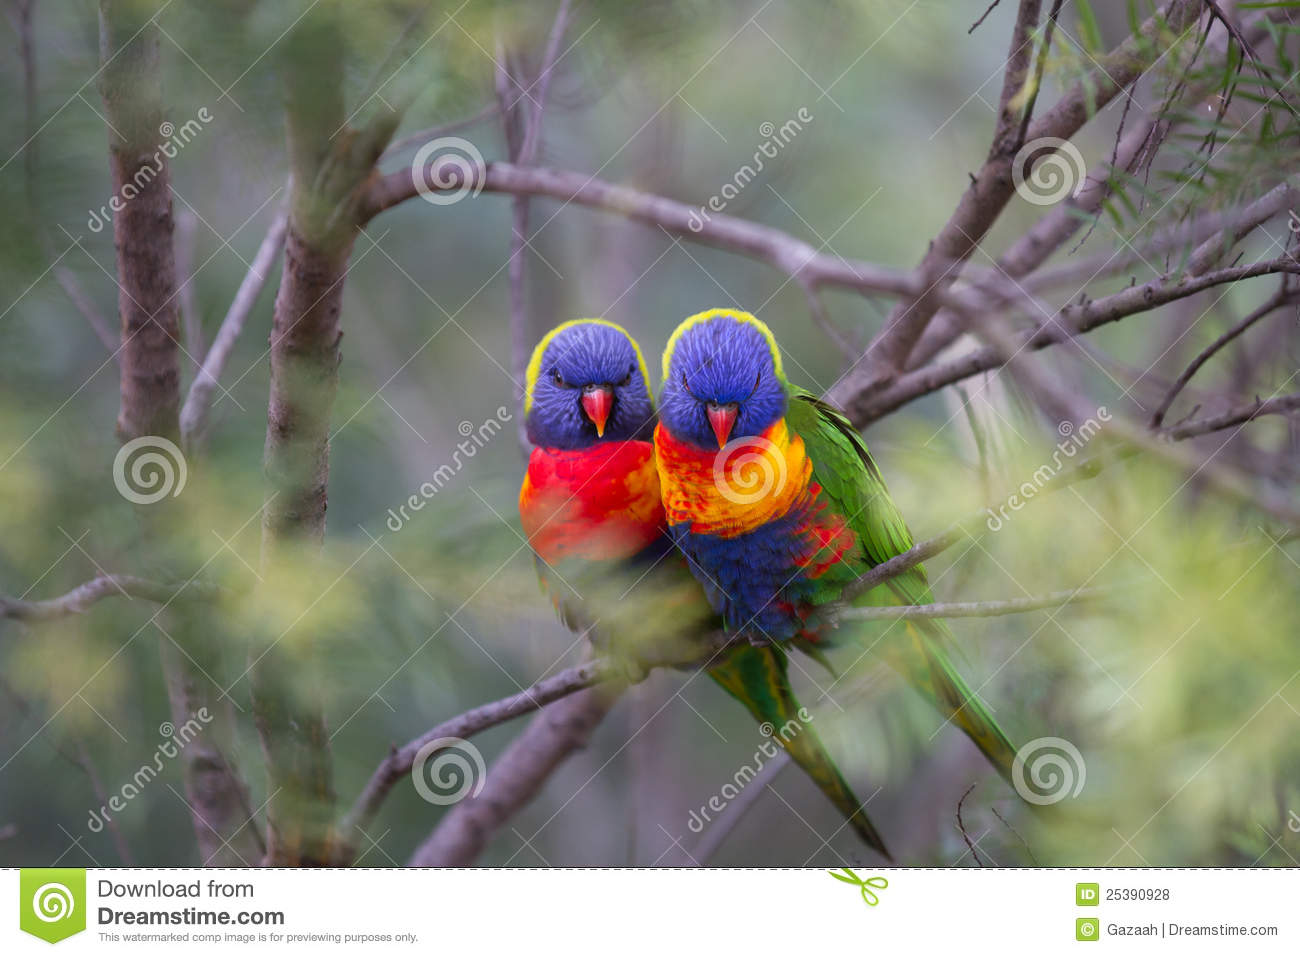 Love Birds in a soft bush setting